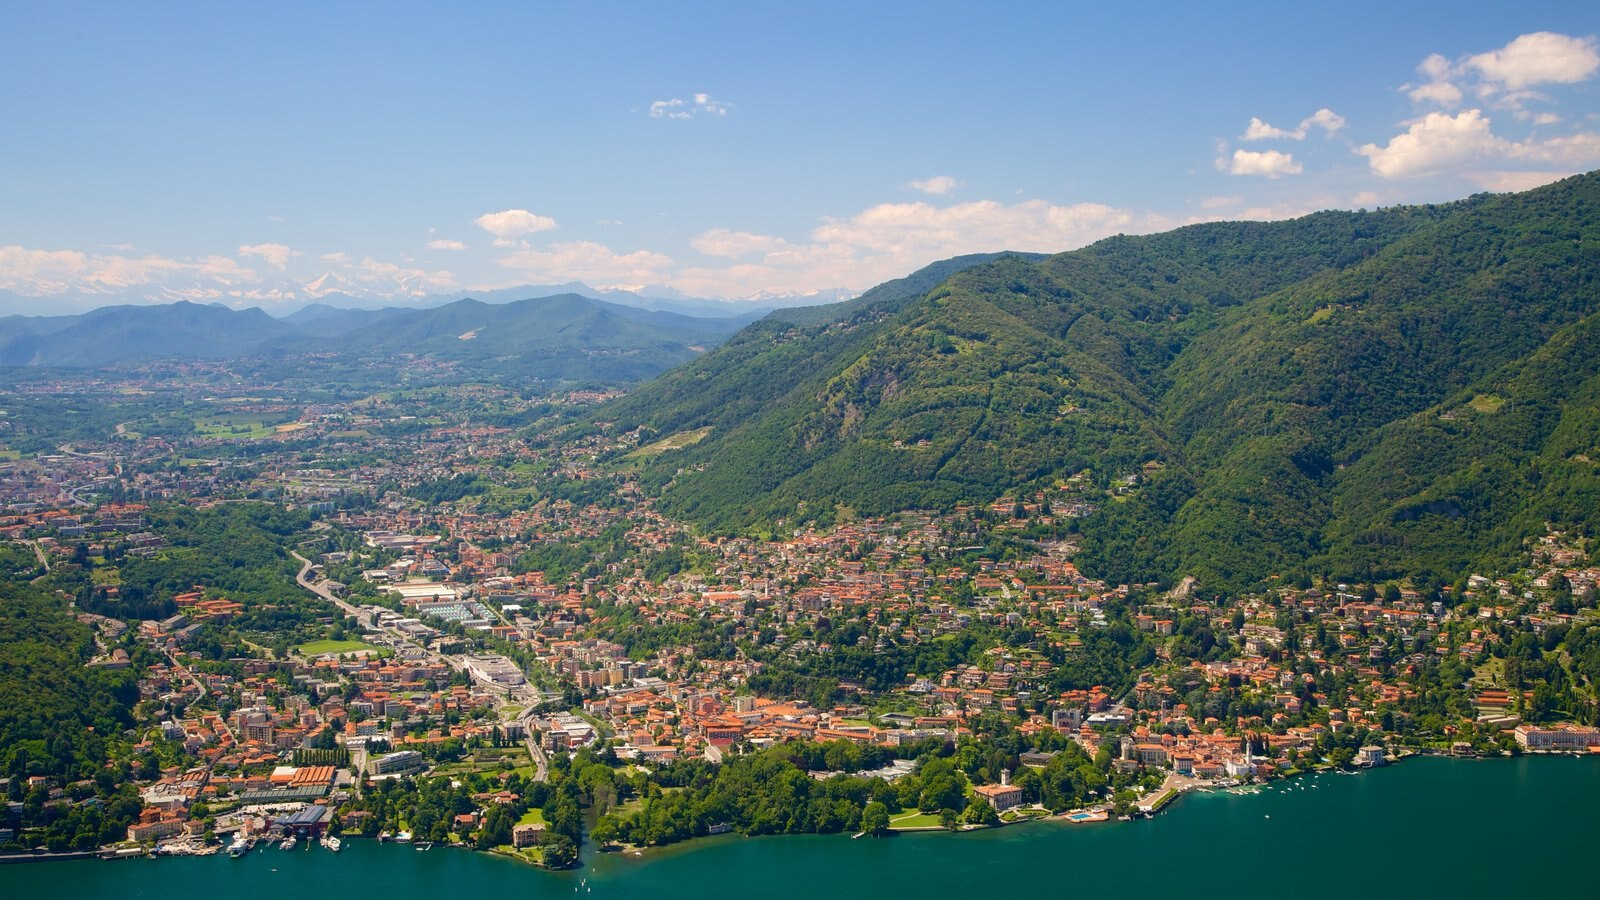 Como-Brunate Funicular featuring a city, a coastal town and mountains